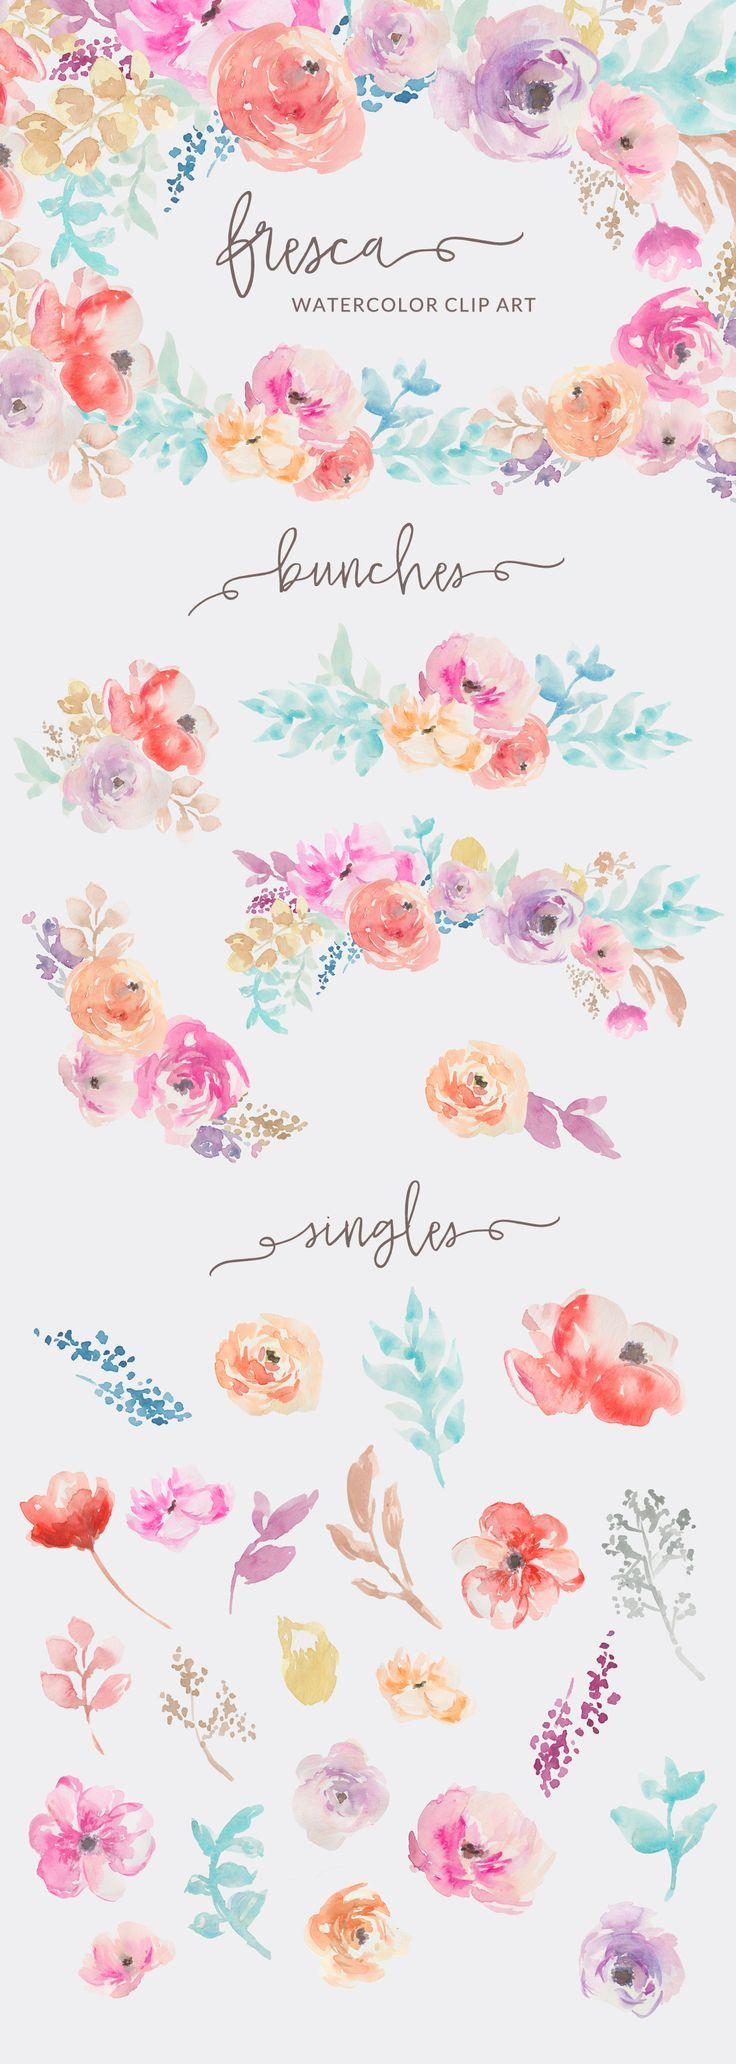 Watercolor Flowers Clip Art By Angie Makes Chryssa Flowers Flower Art Watercolor Flowers Floral Watercolor